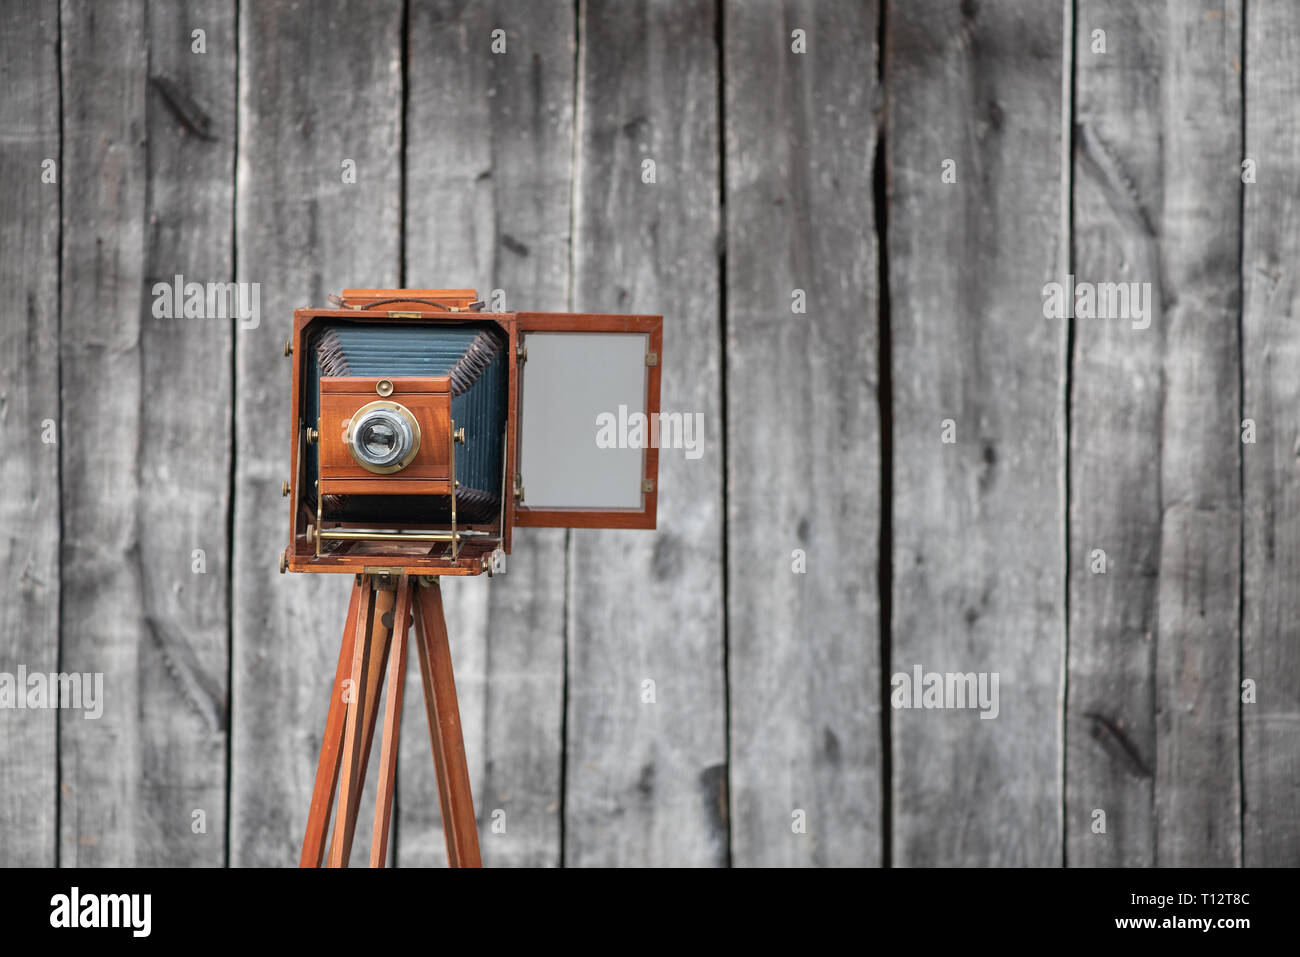 Retro large format camera on tripod. Concept - photography of the 1930s-1950s. - Stock Image